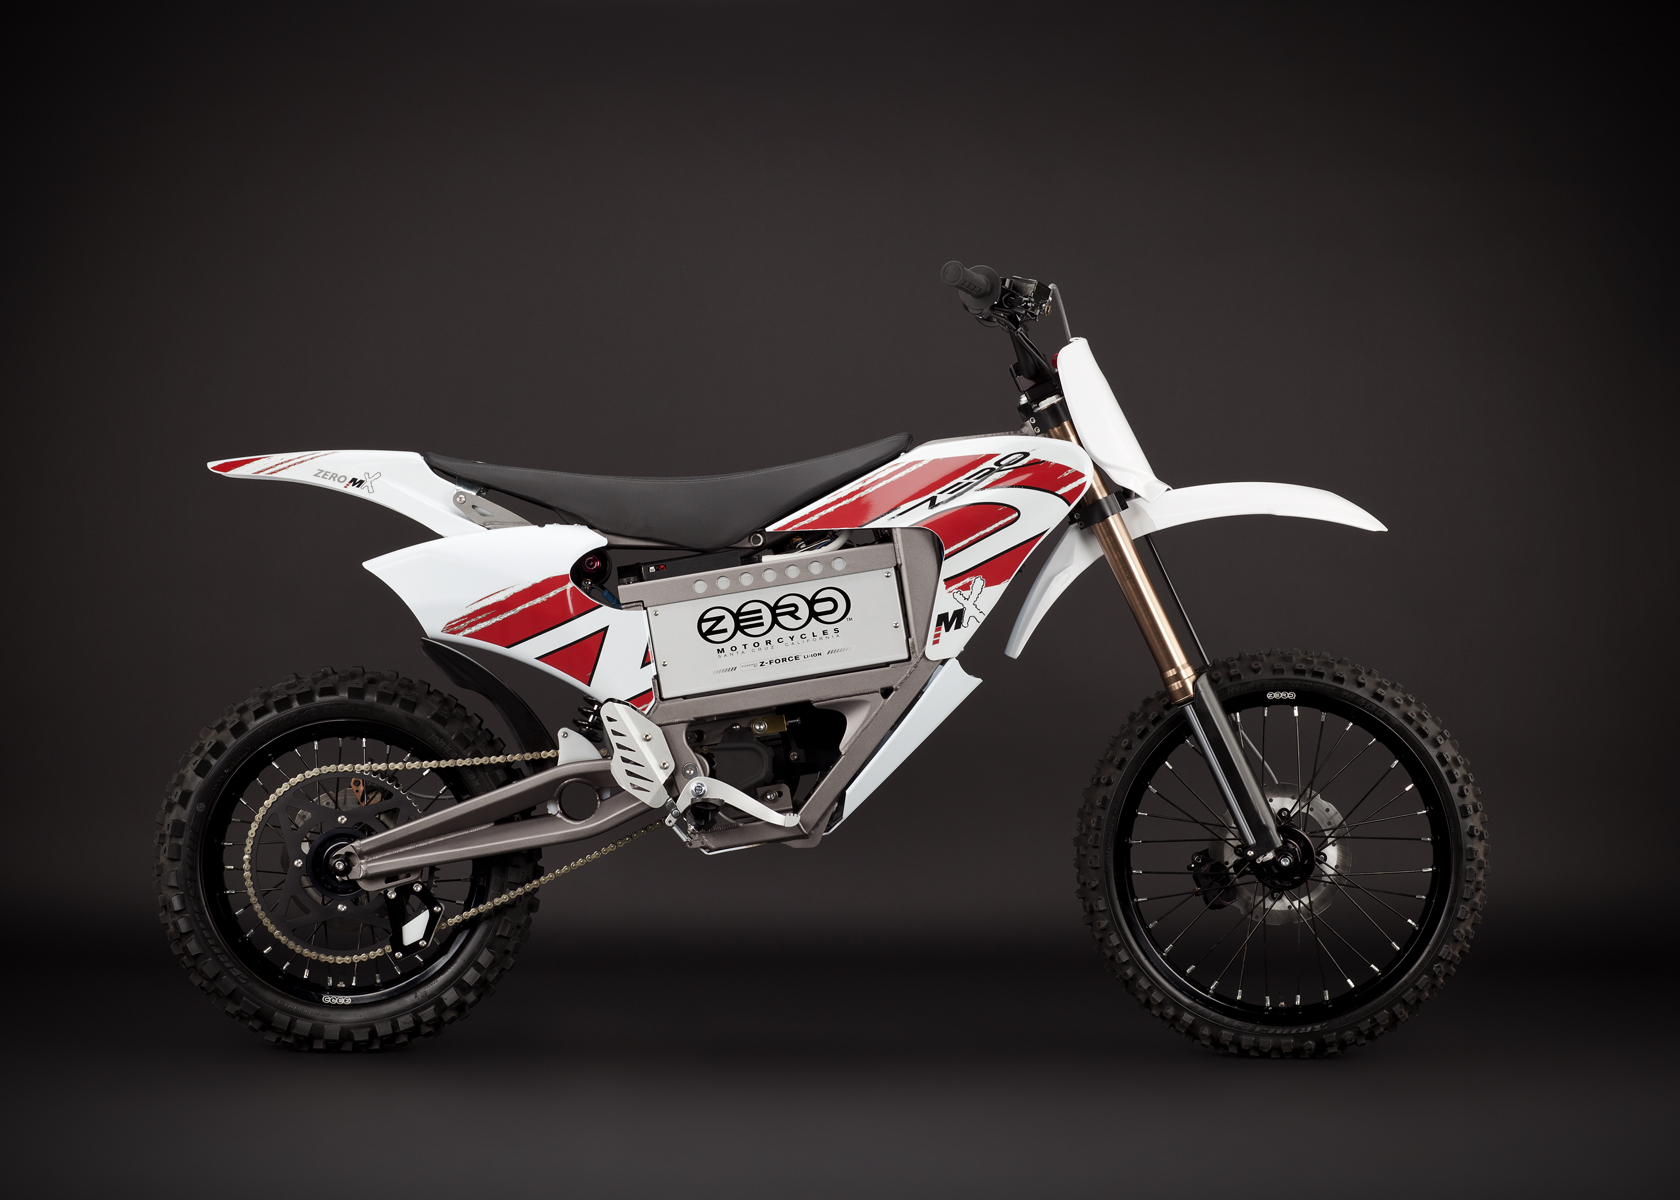 2011 Zero MX Electric Motorcycle: Right Profile, Dirt Model